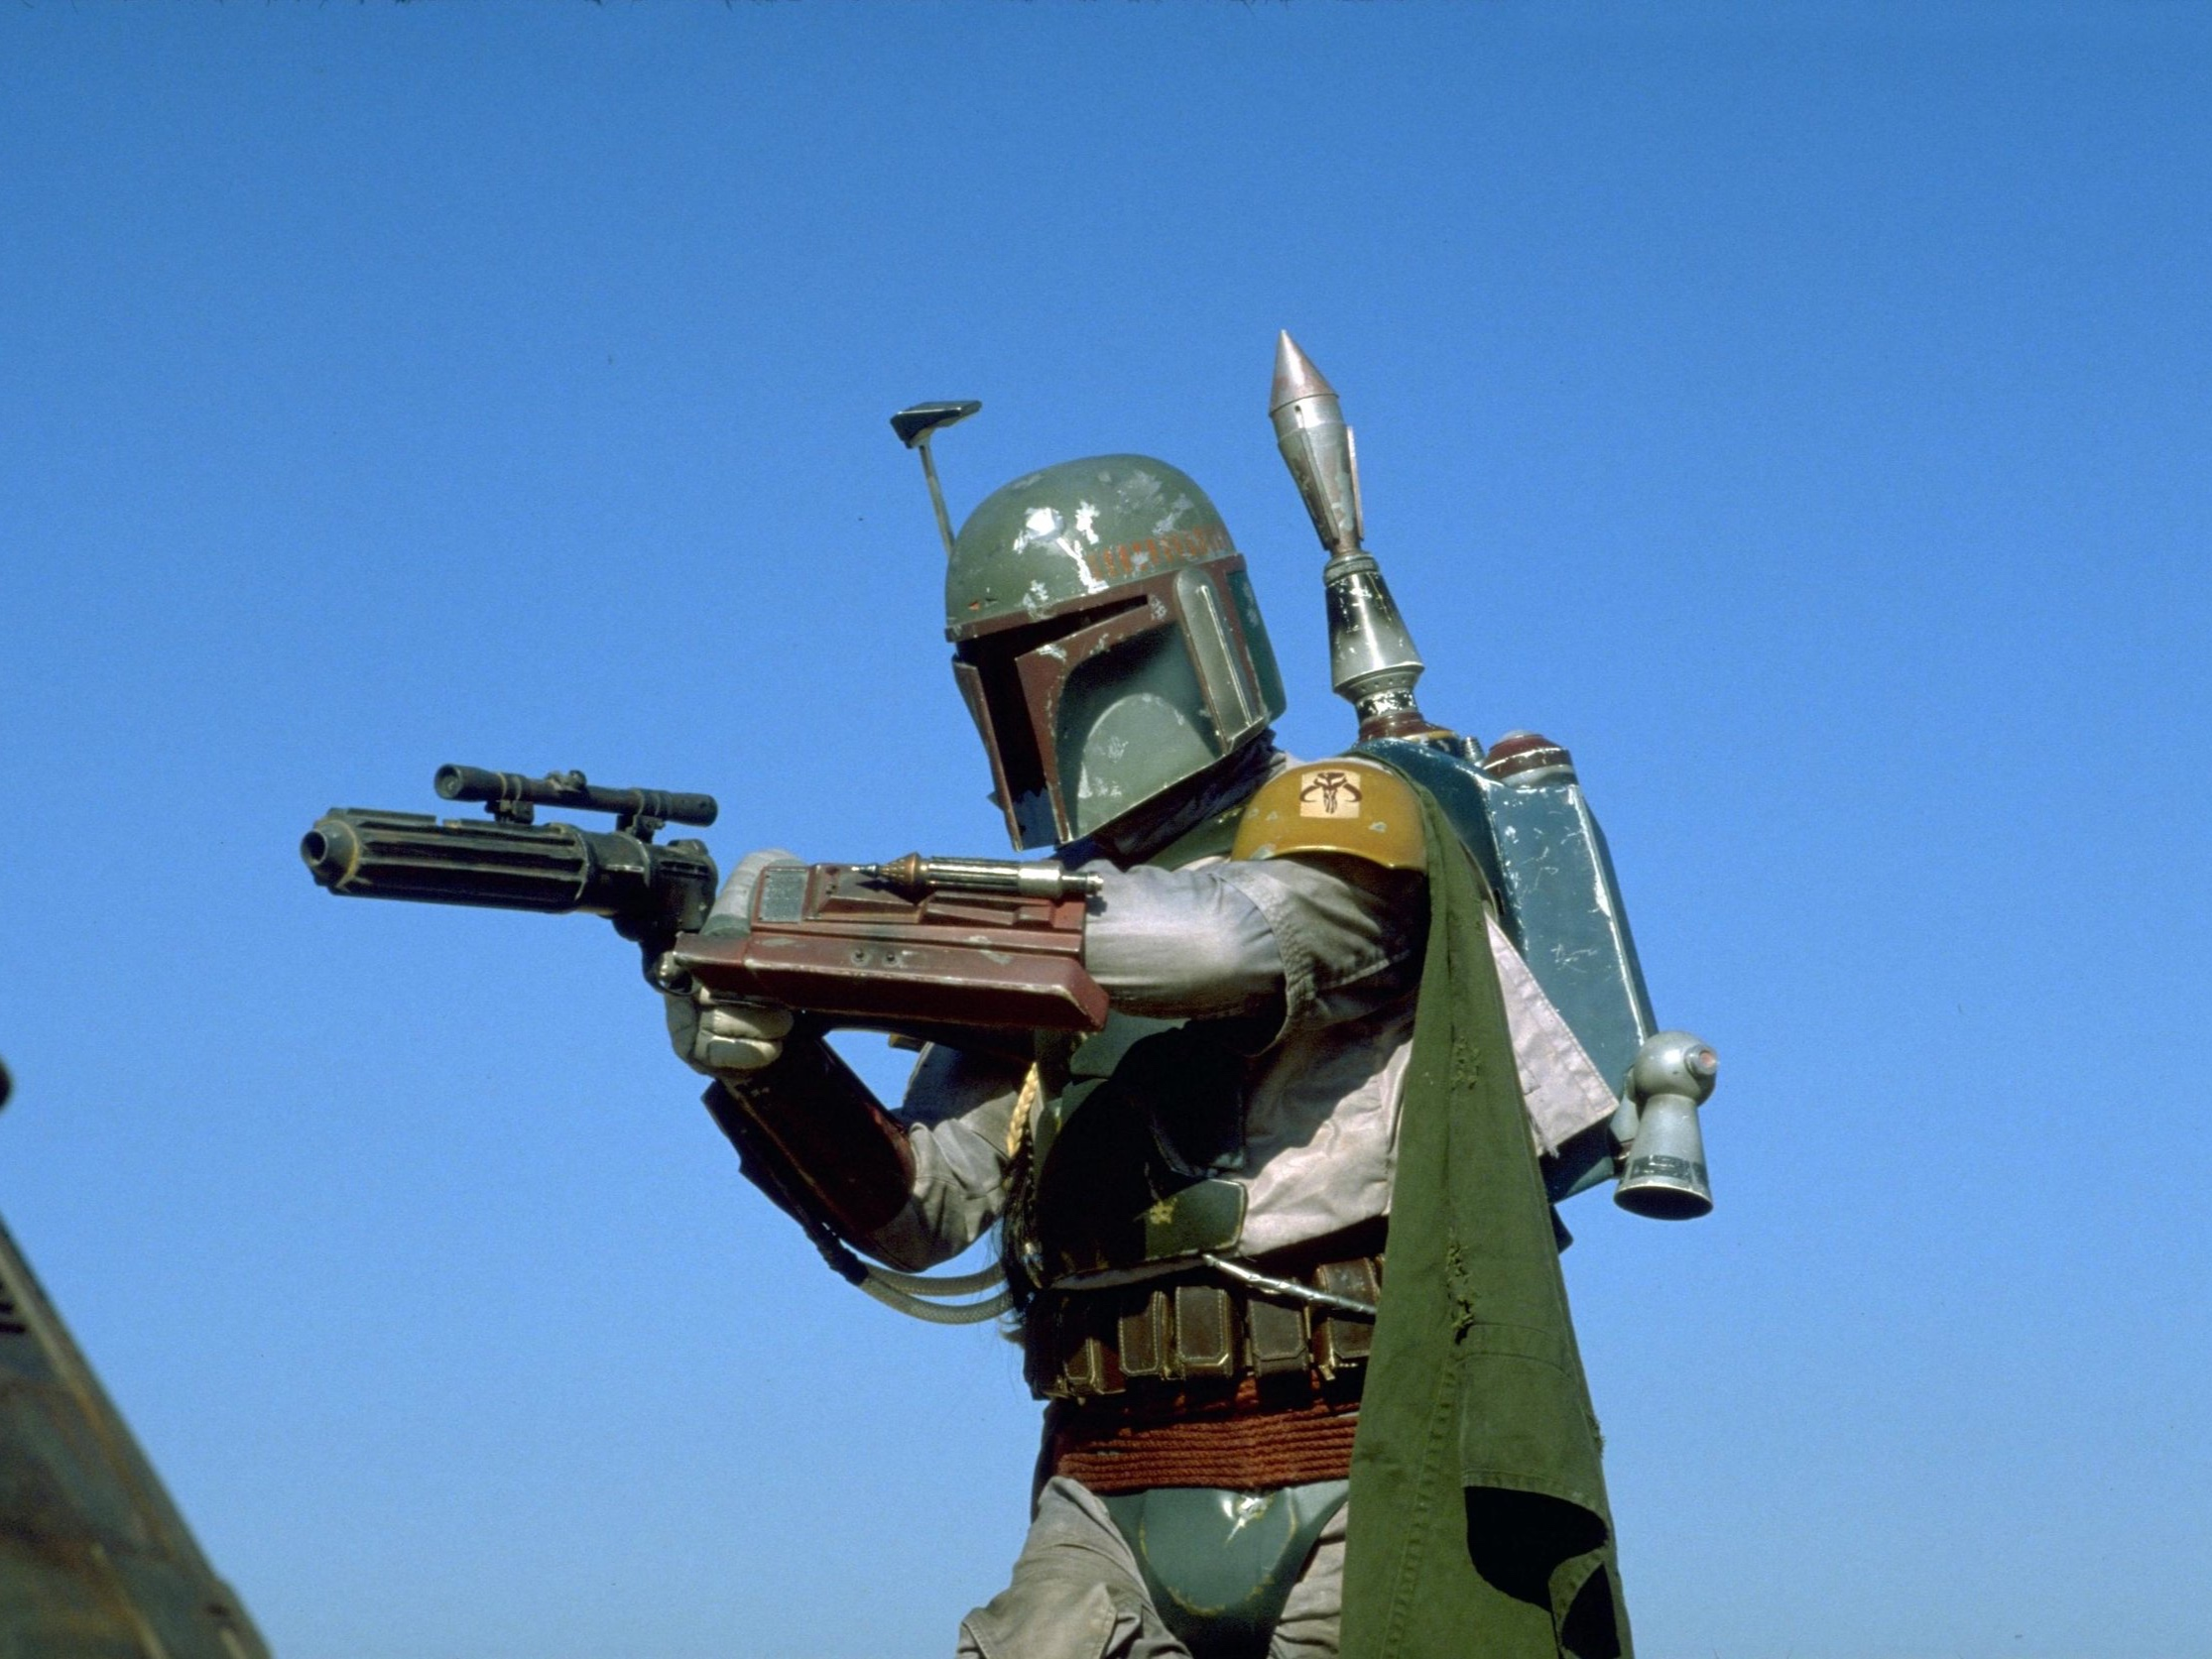 "MARIO - Boba Fett (Star Wars) – To this day he is still one of my favorite characters in the Star Wars universe. I remember rewinding his scenes as a kid and was upset he was ""killed"" by the Sarlacc. His armor and mannerisms are so unique, I would love to see him have his own movie on the big screen!"